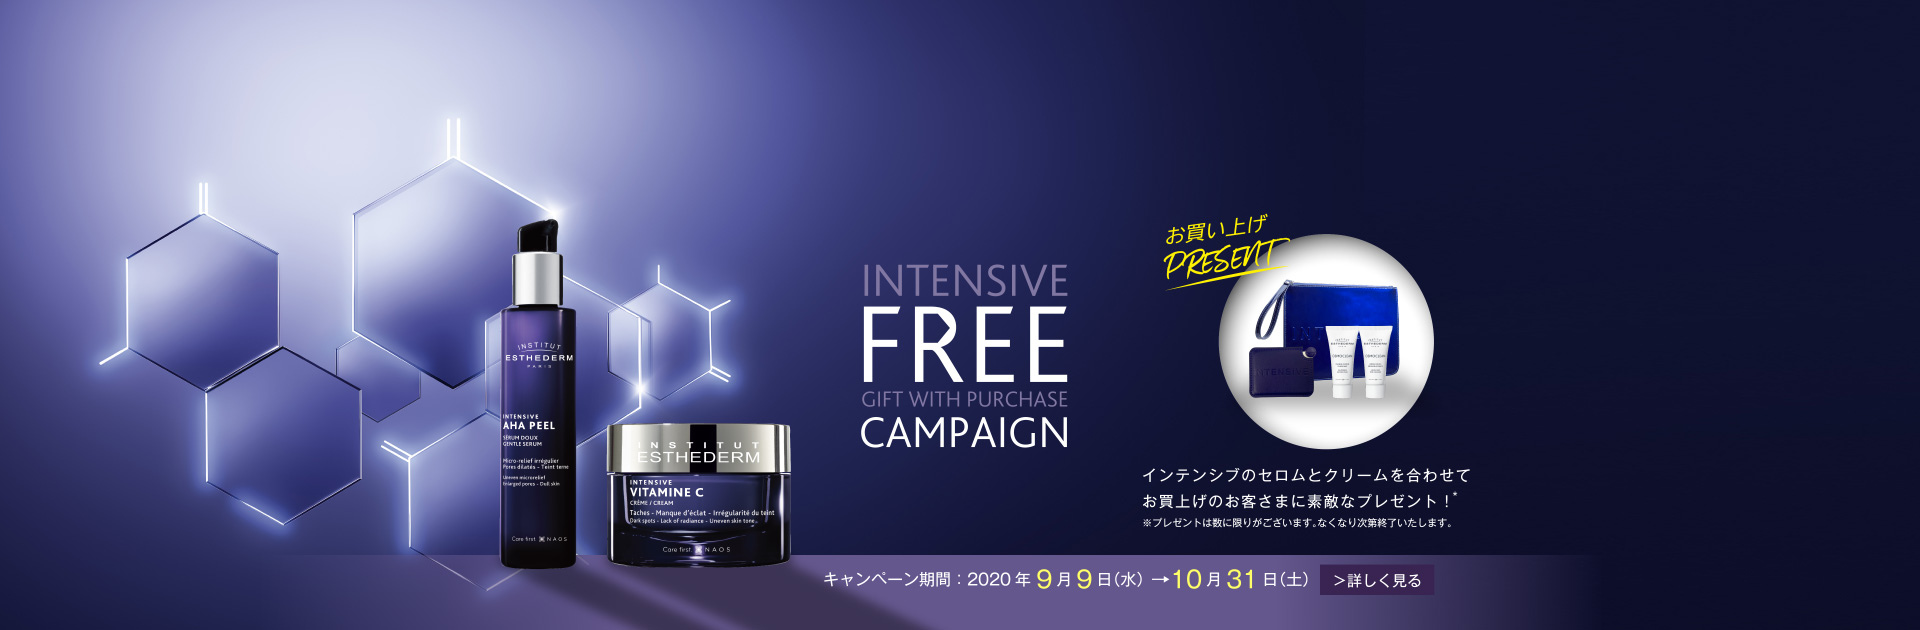 INTENSIVE CAMPAIGN  FREE GIFT WITH PURCHASE キャンペーン期間:2020年9月9日(水)→10月31日(土) 詳しく見る